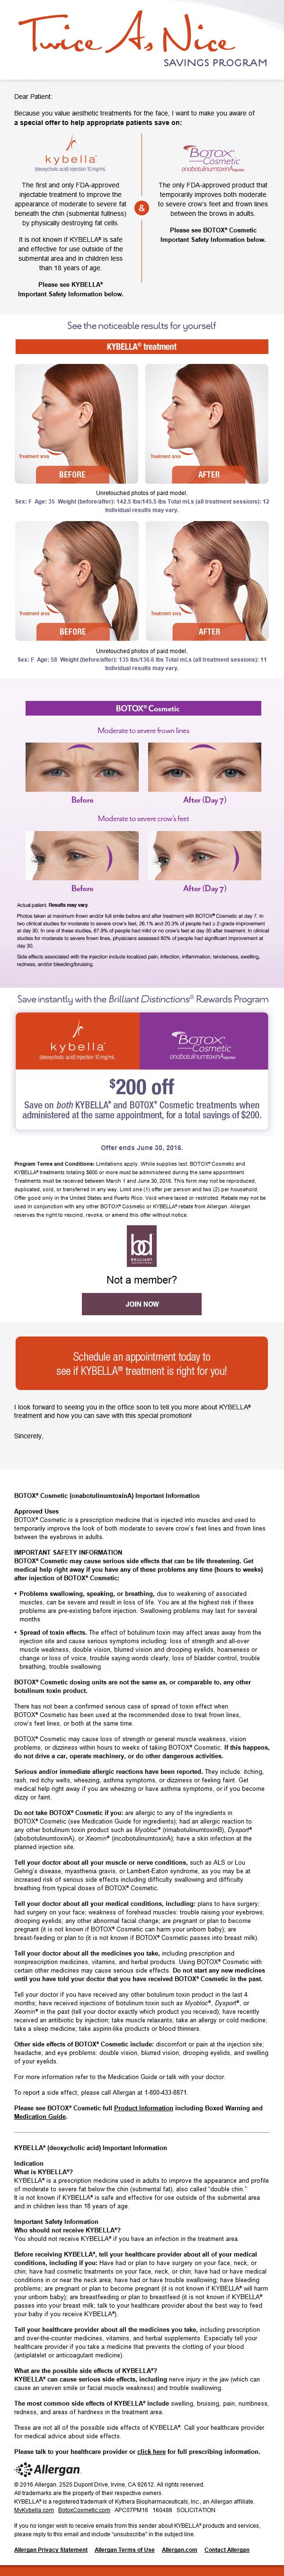 Kybella Information - Having trouble seeing this? Please contact our office for details